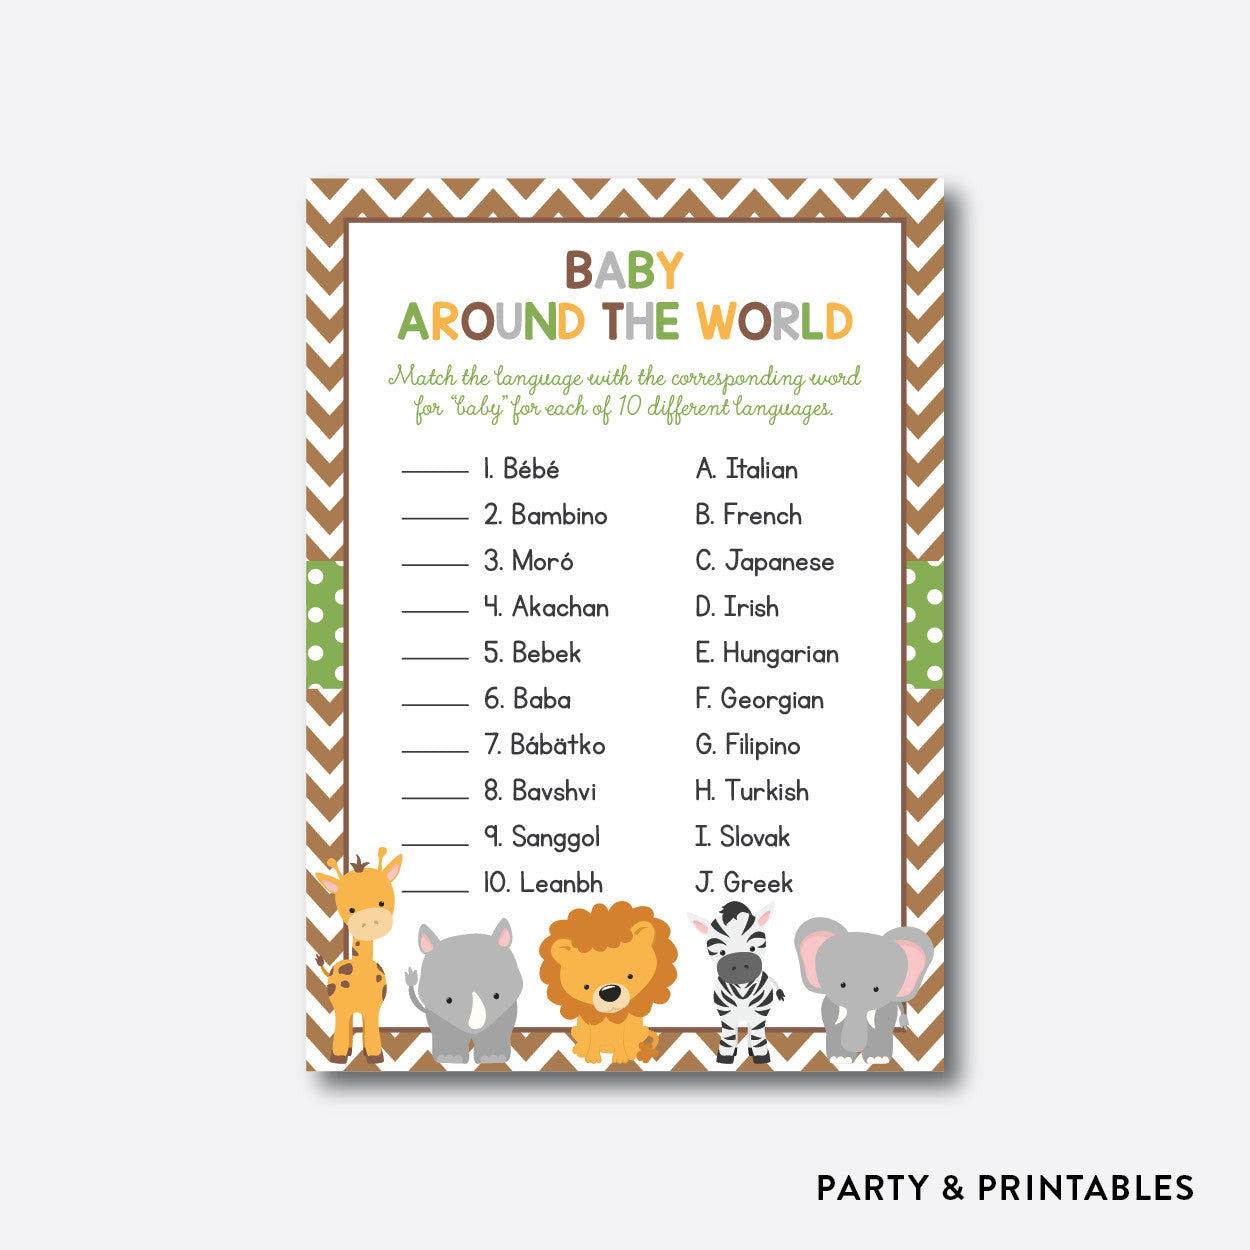 Baby Safari Baby Around The World / Non-Personalized / Instant Download (SBS.31), party printables - Party and Printables